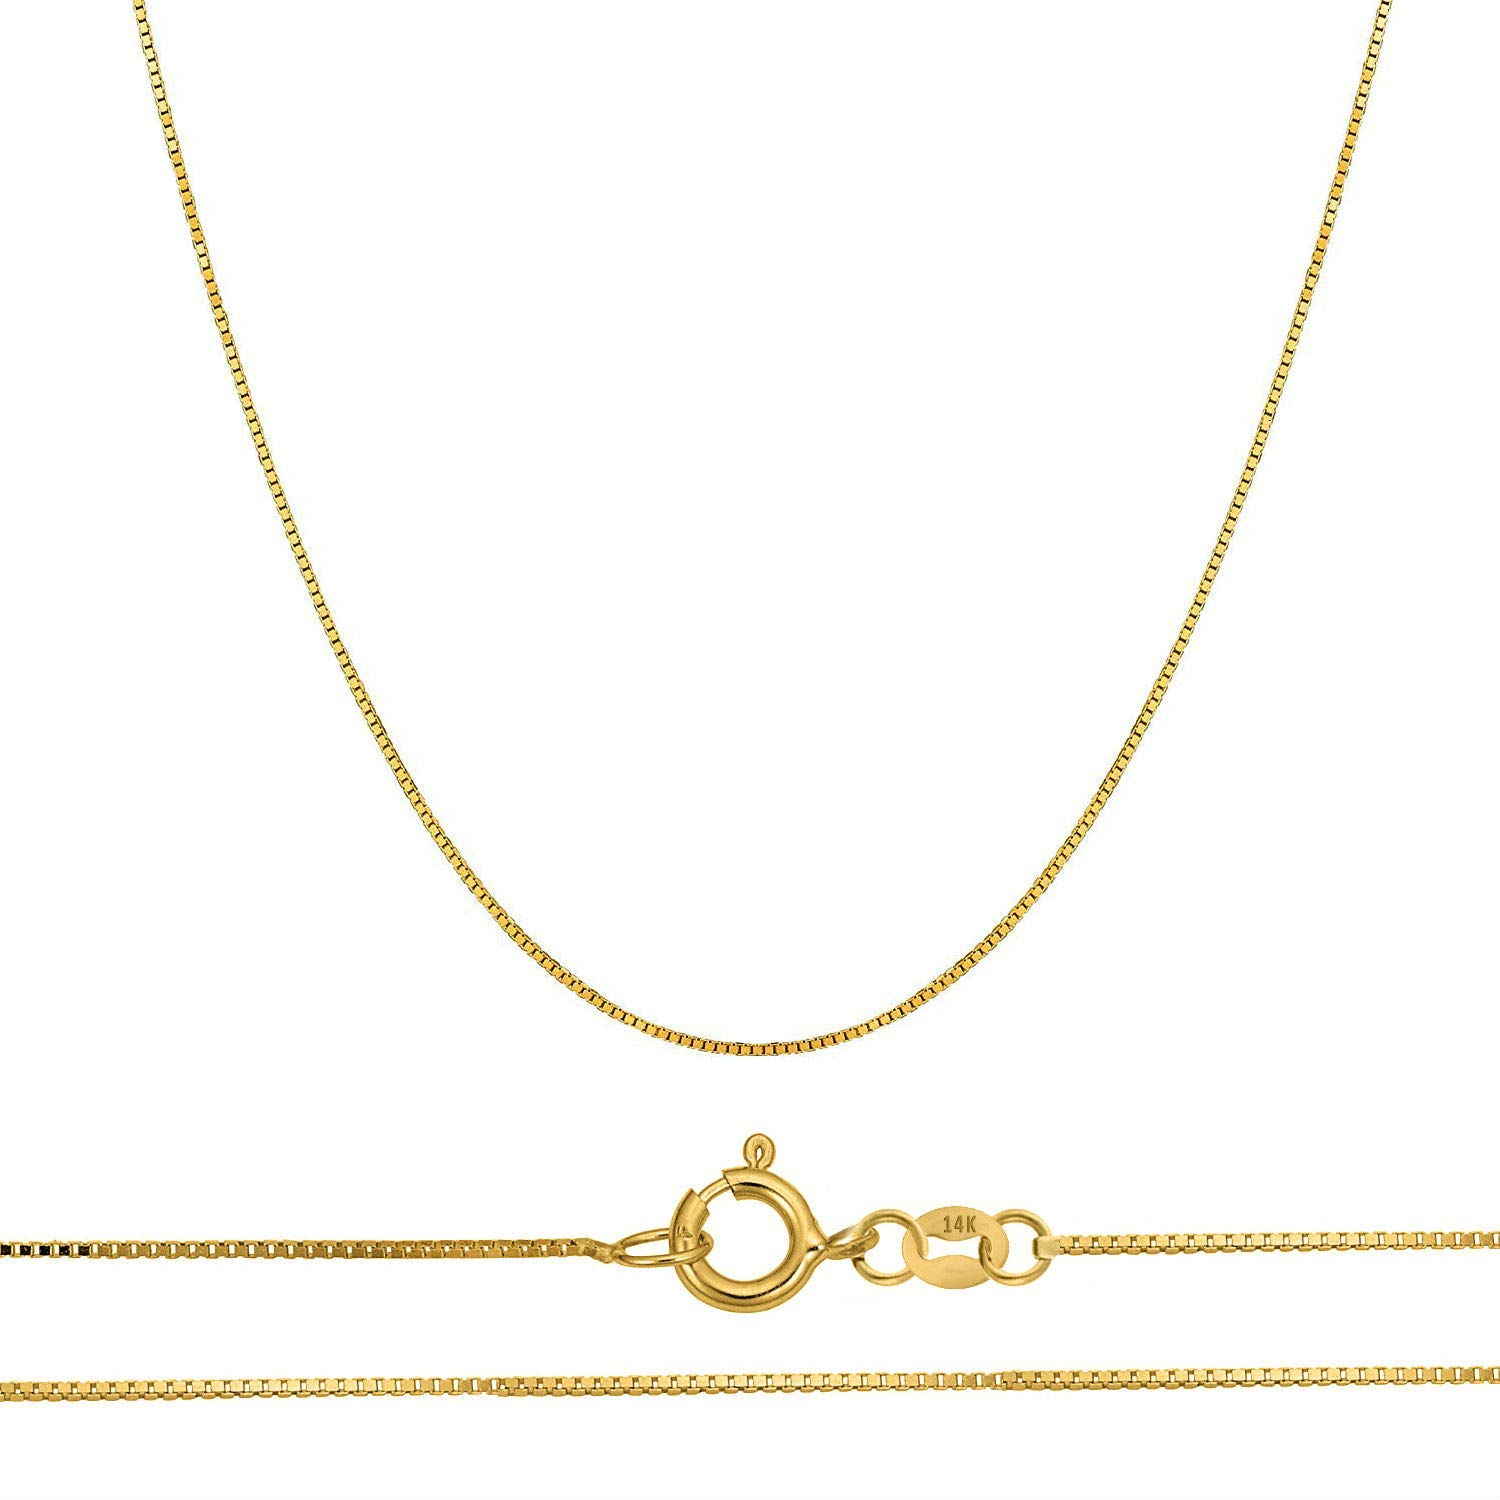 Orostar 14K Solid Gold 0.45mm Thin Box Chain Pendant Necklace, 16''-20'' - Yellow, White, and Rose Gold (Yellow Gold, 16)